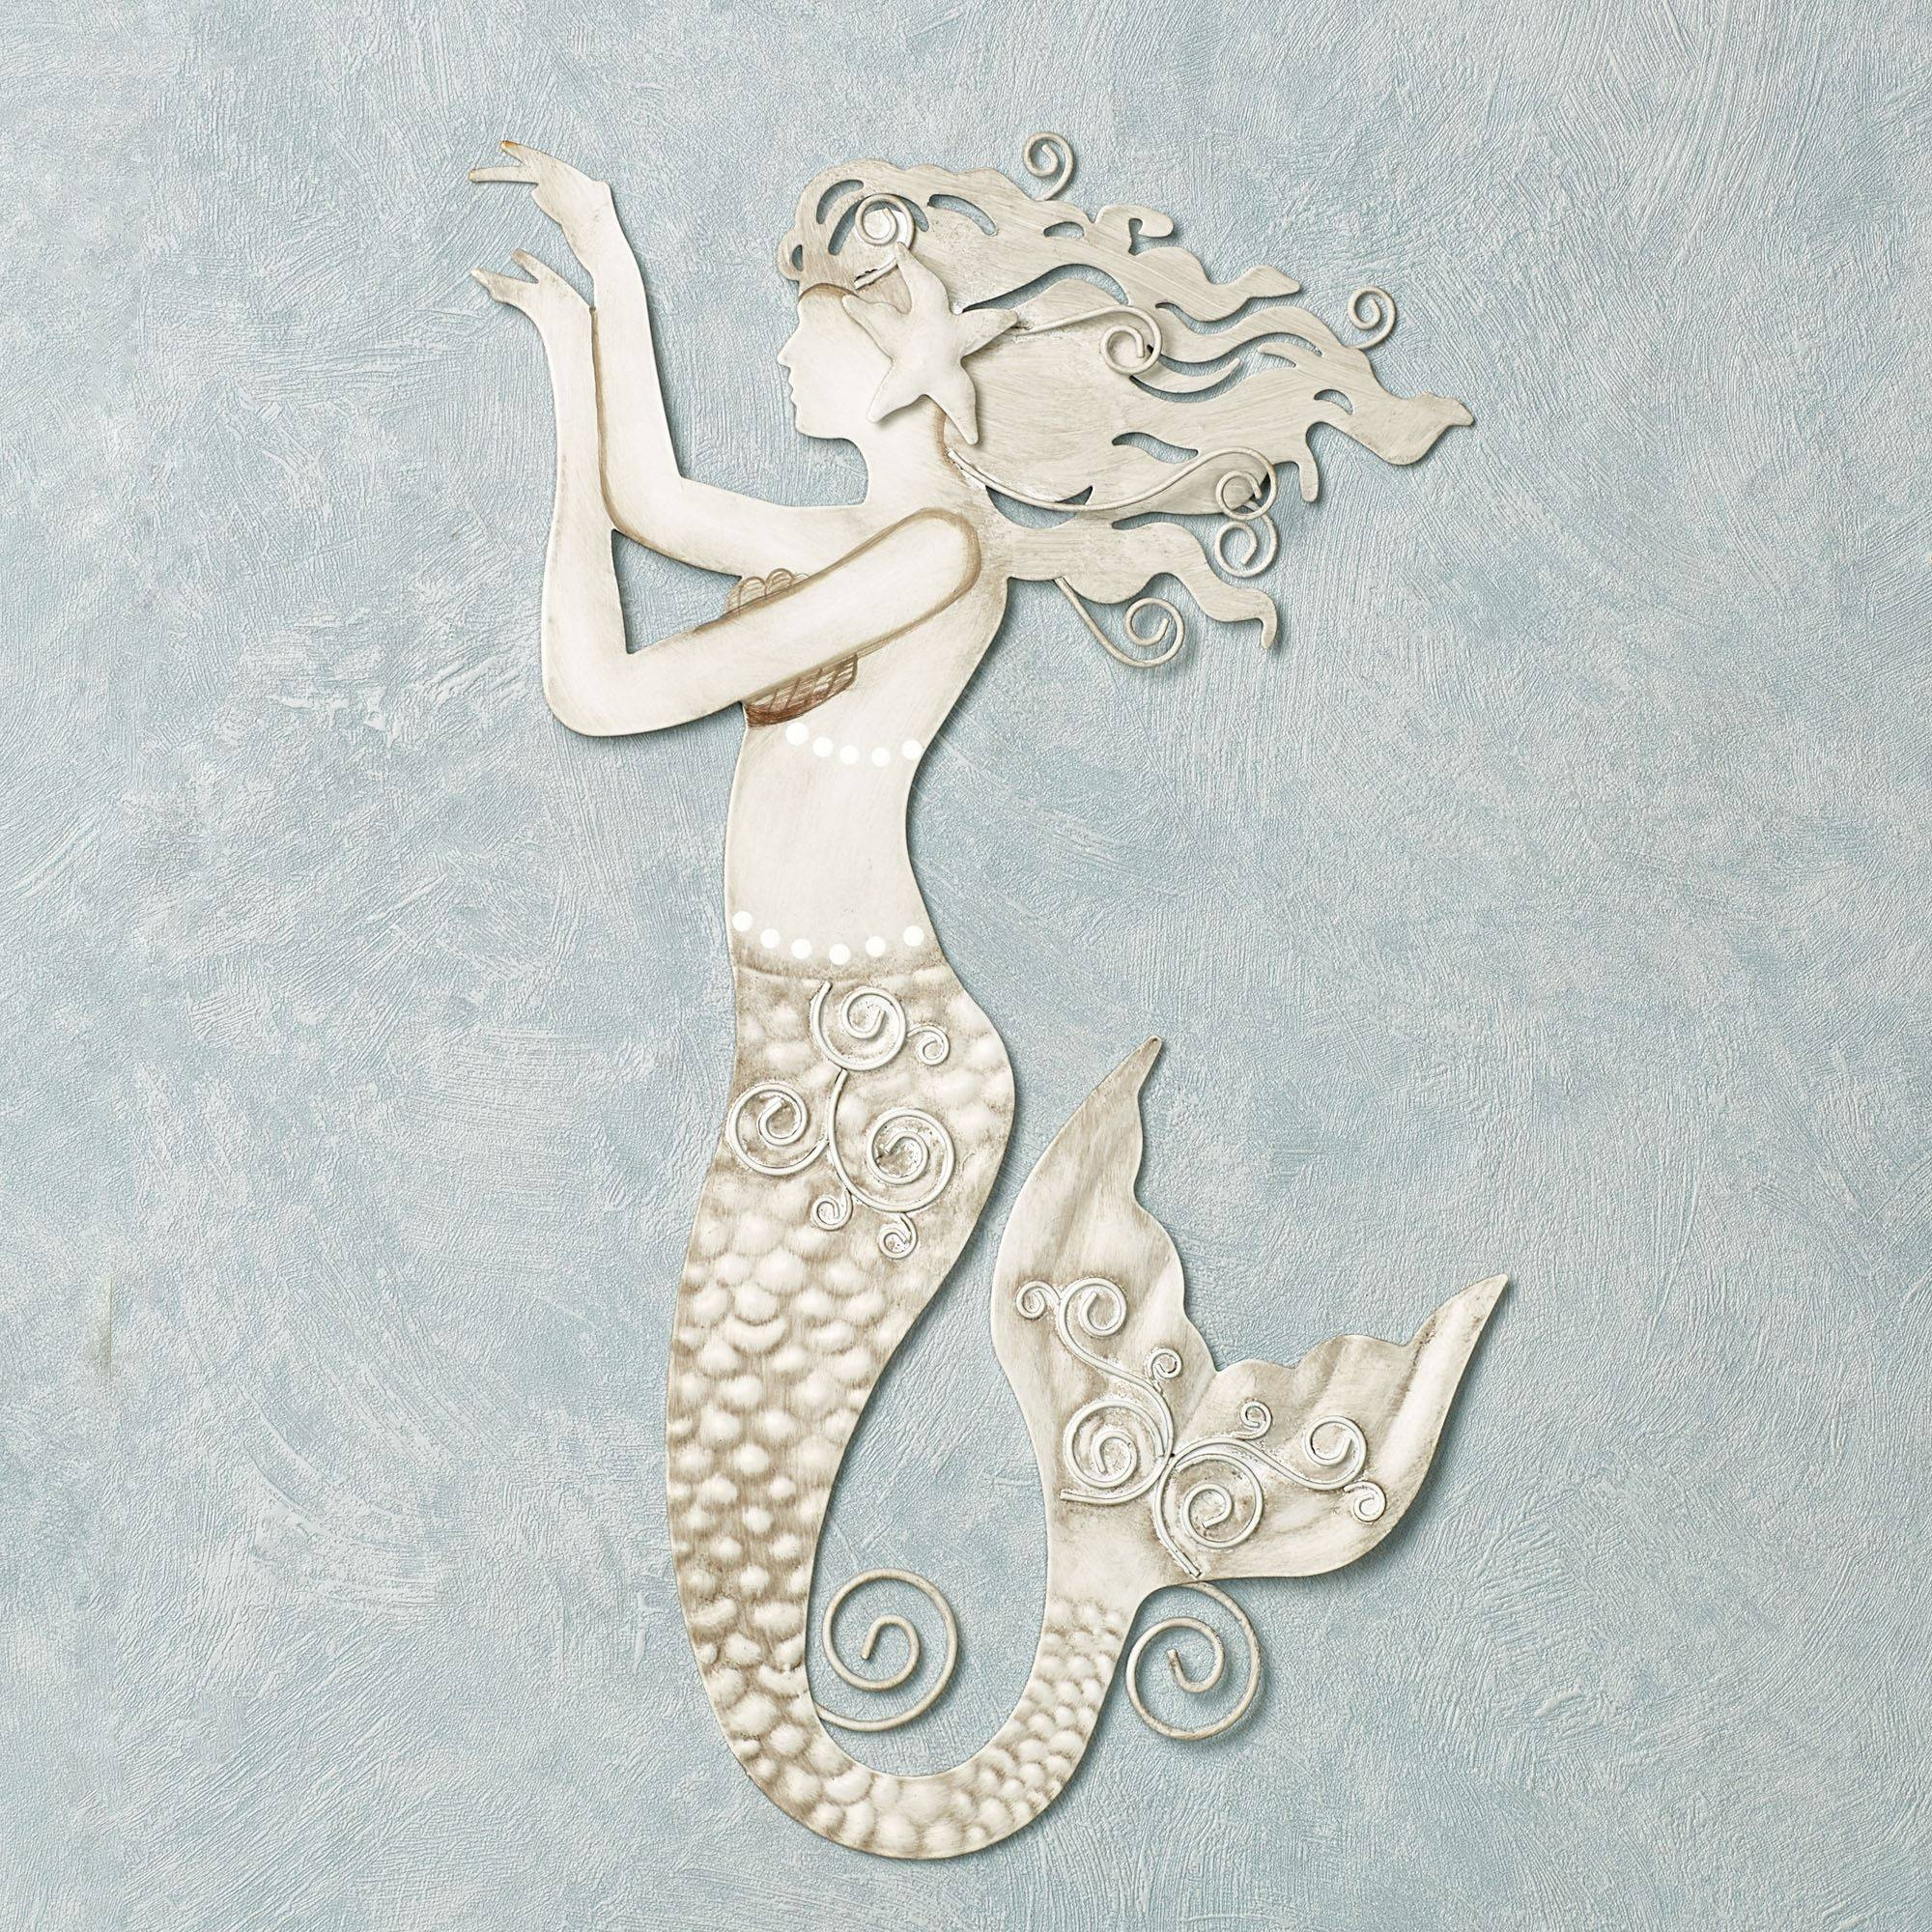 Ocean Mermaid Coastal Home Accents | Touch Of Class In Newest Mermaid Metal Wall Art (View 18 of 20)